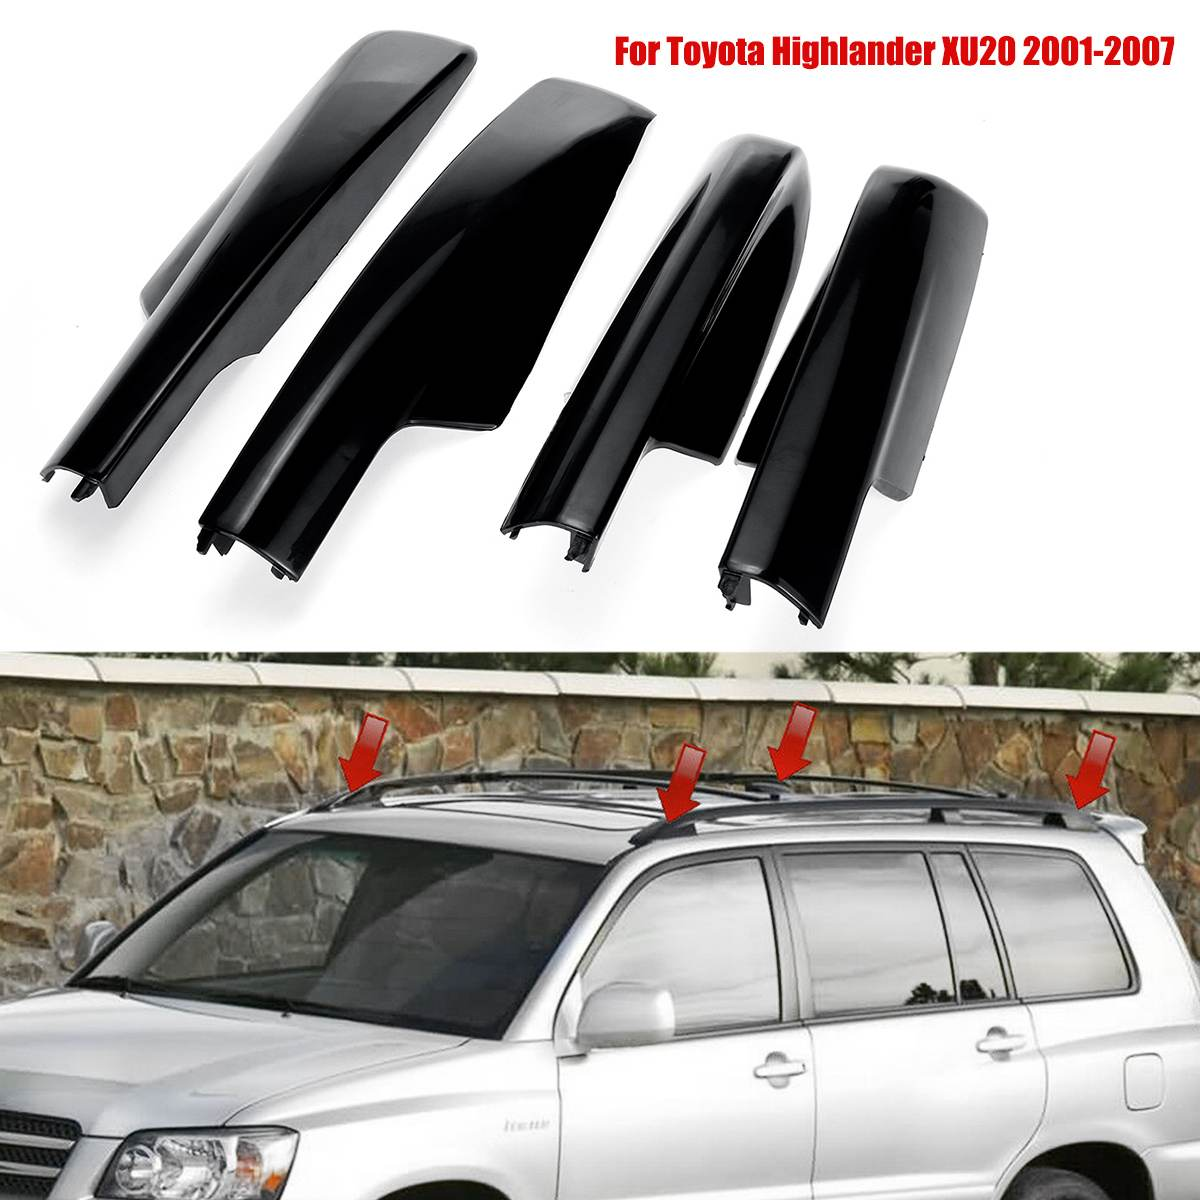 Autoleader 4PCS Roof Rack Bar Rail End Protection Cover Shell For Toyota Highlander XU20 2001-2007 New image